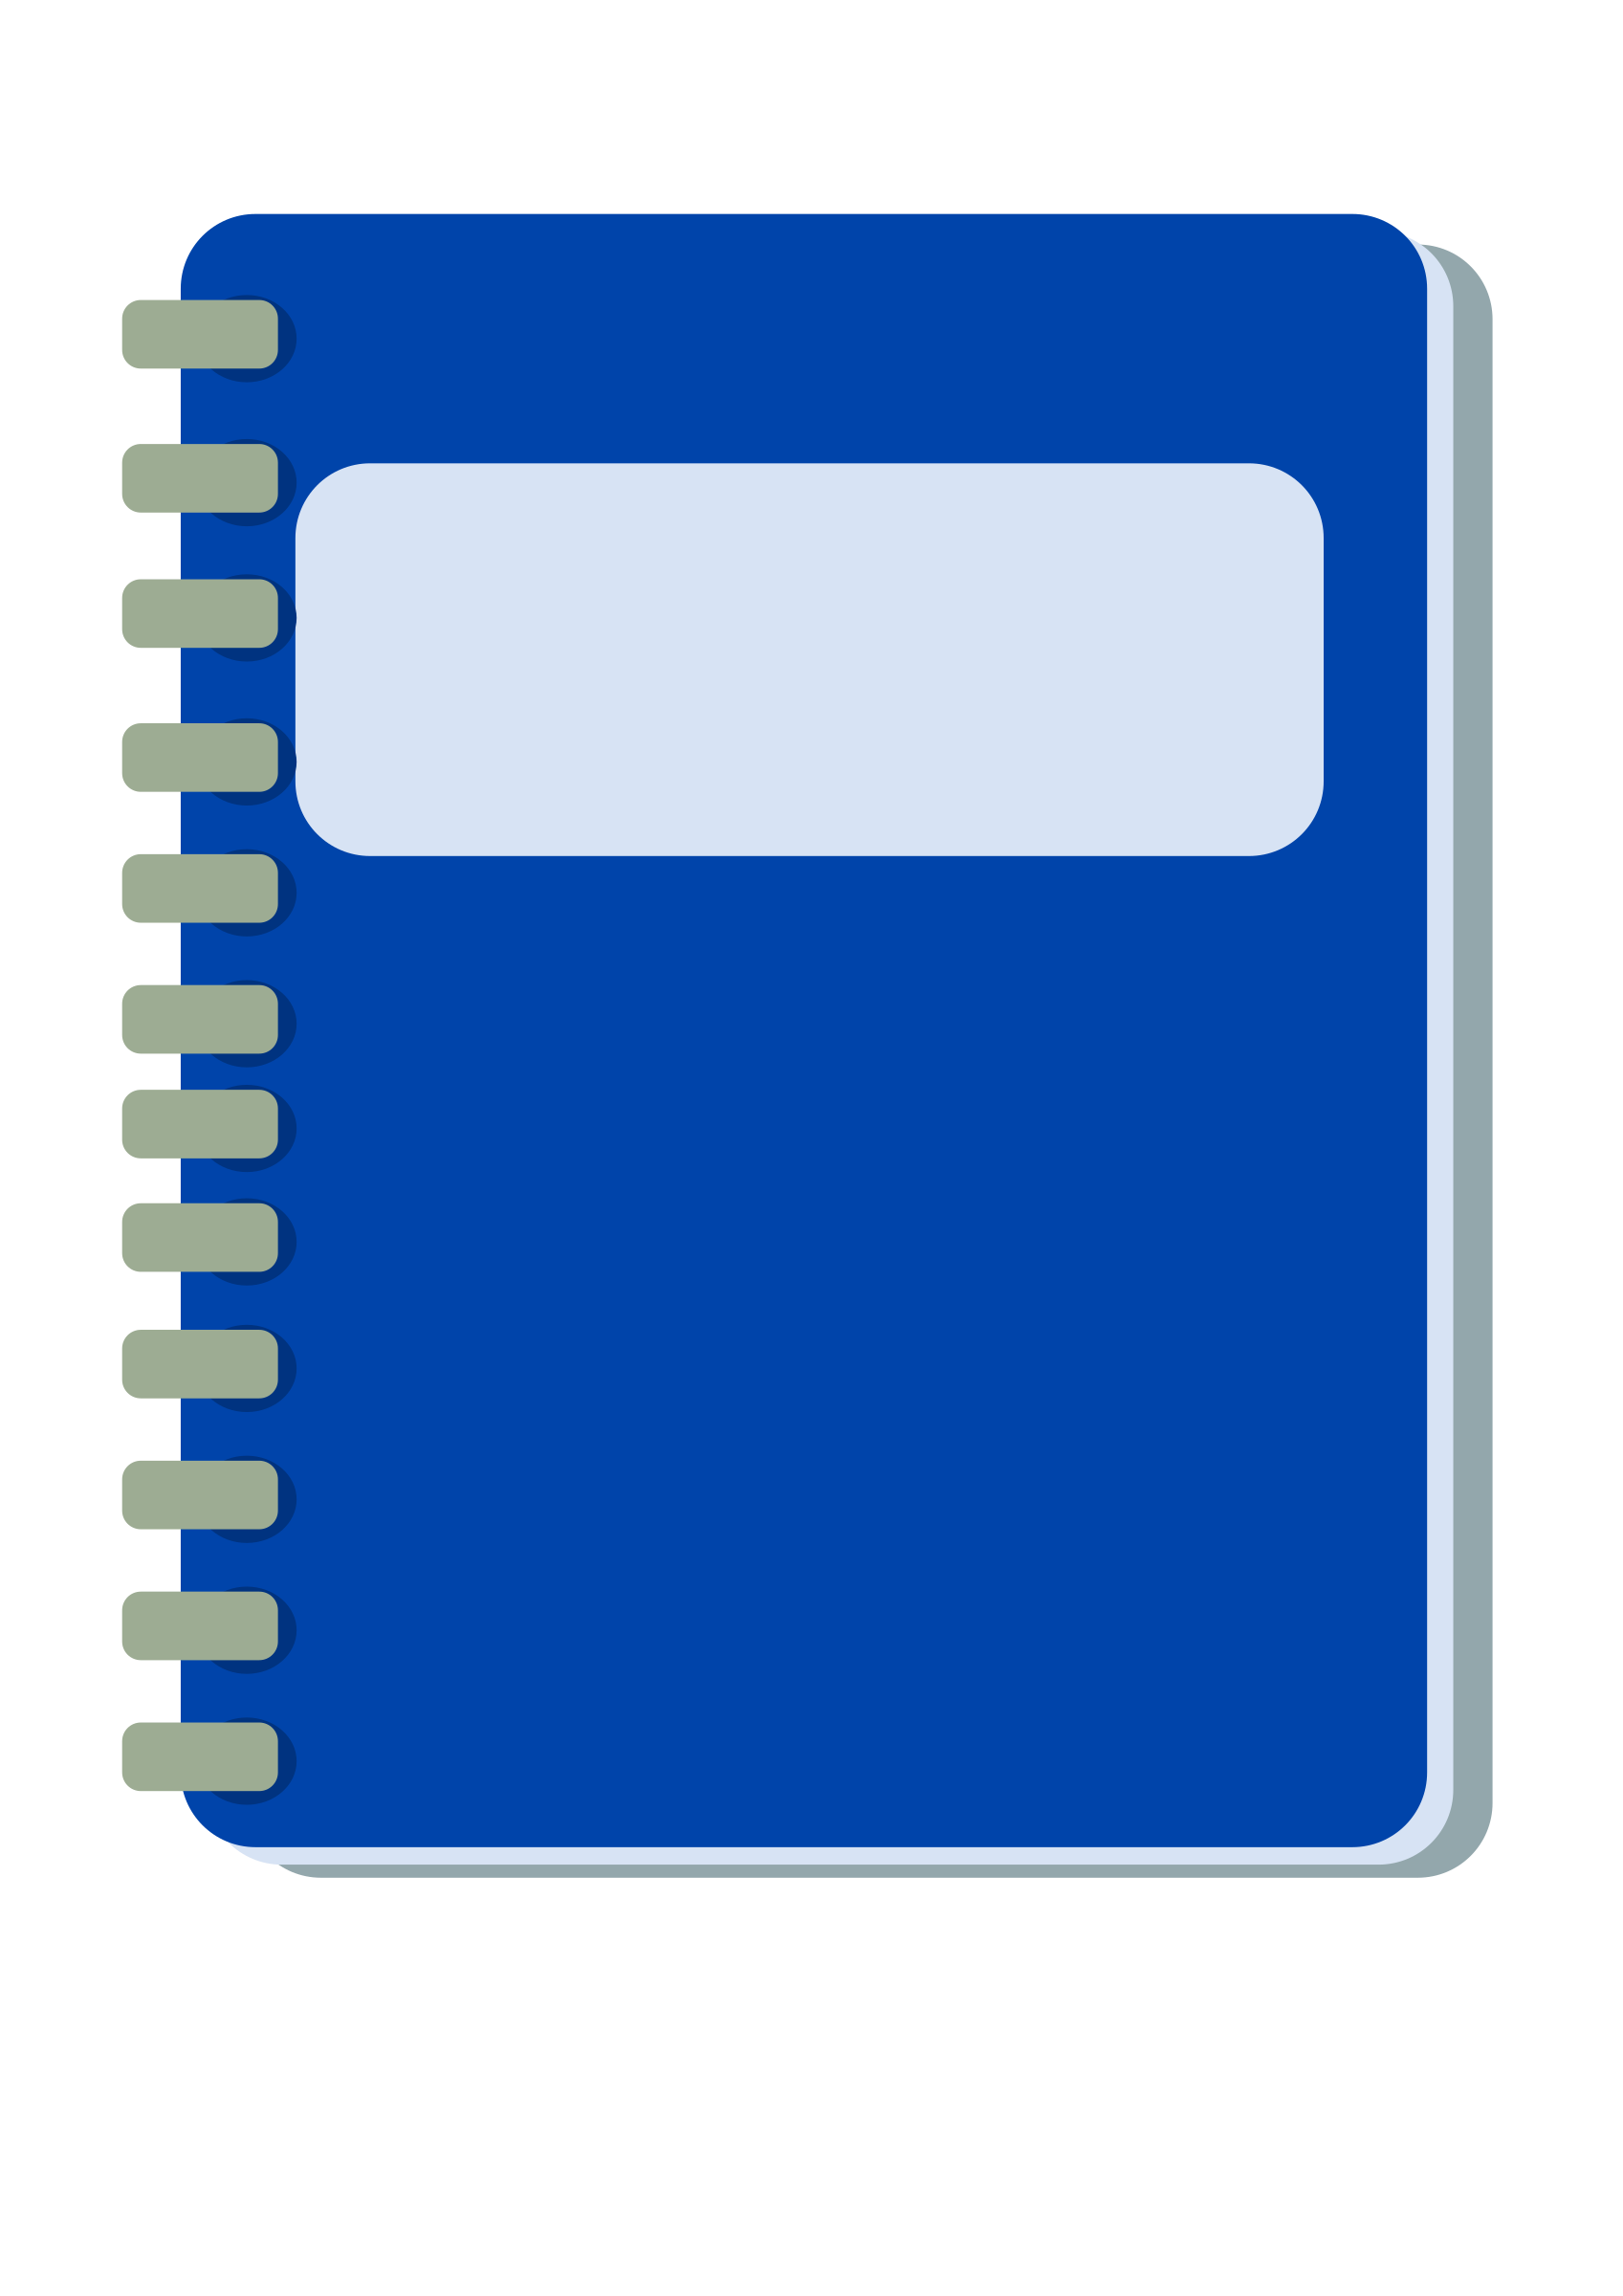 Notepad clipart diary pen. Huge freebie download